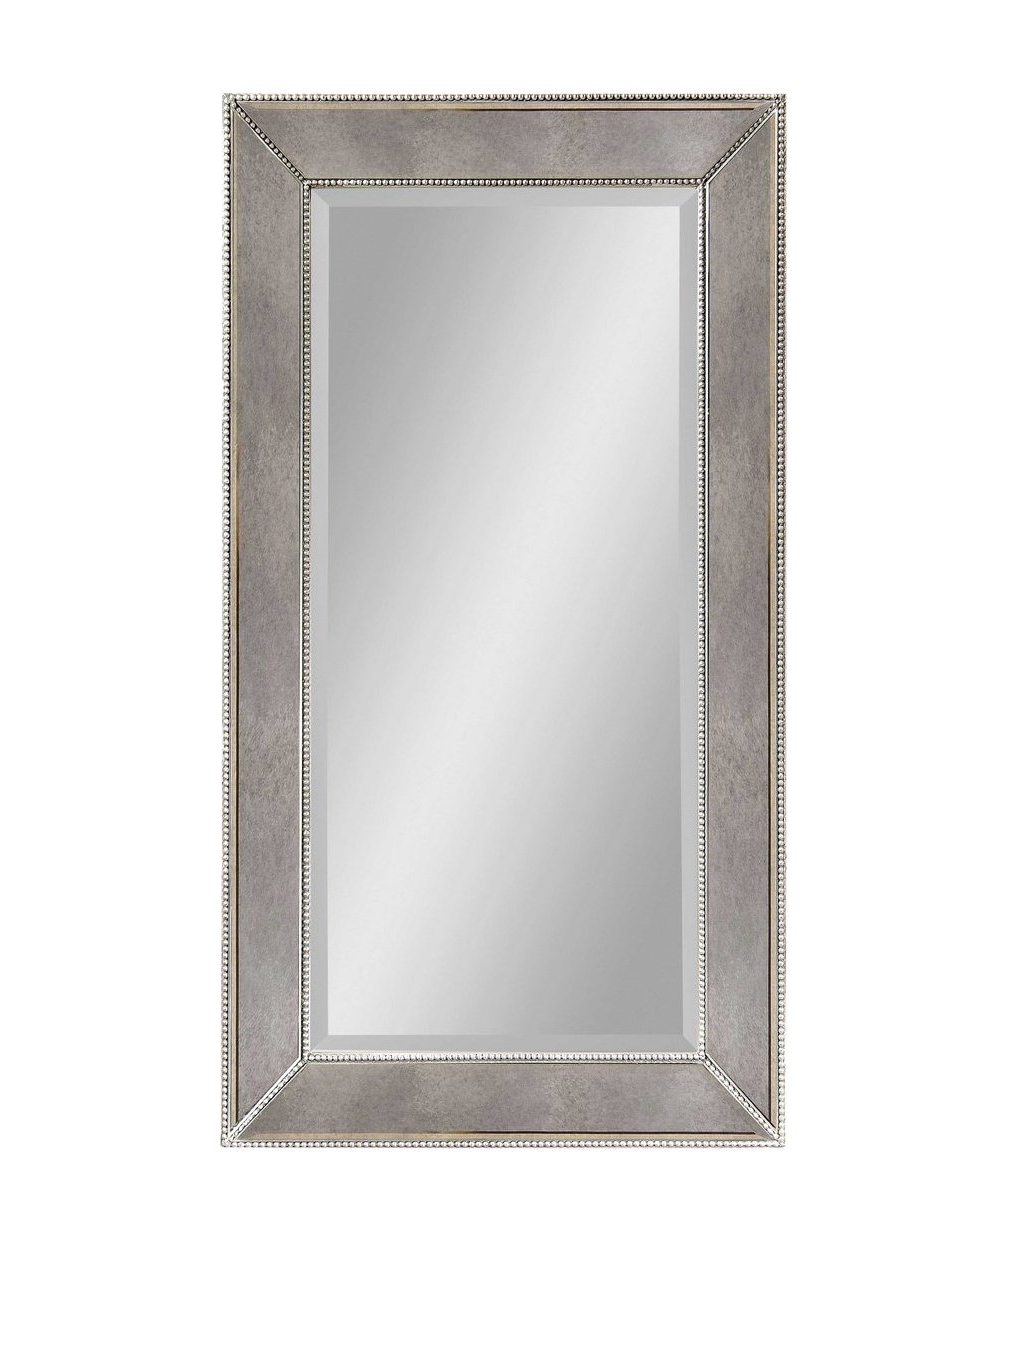 Bassett Mirror Beaded Wall Mirror, 48 Inch, Antique Mirror Regarding Best And Newest Bassett Wall Mirrors (View 17 of 20)